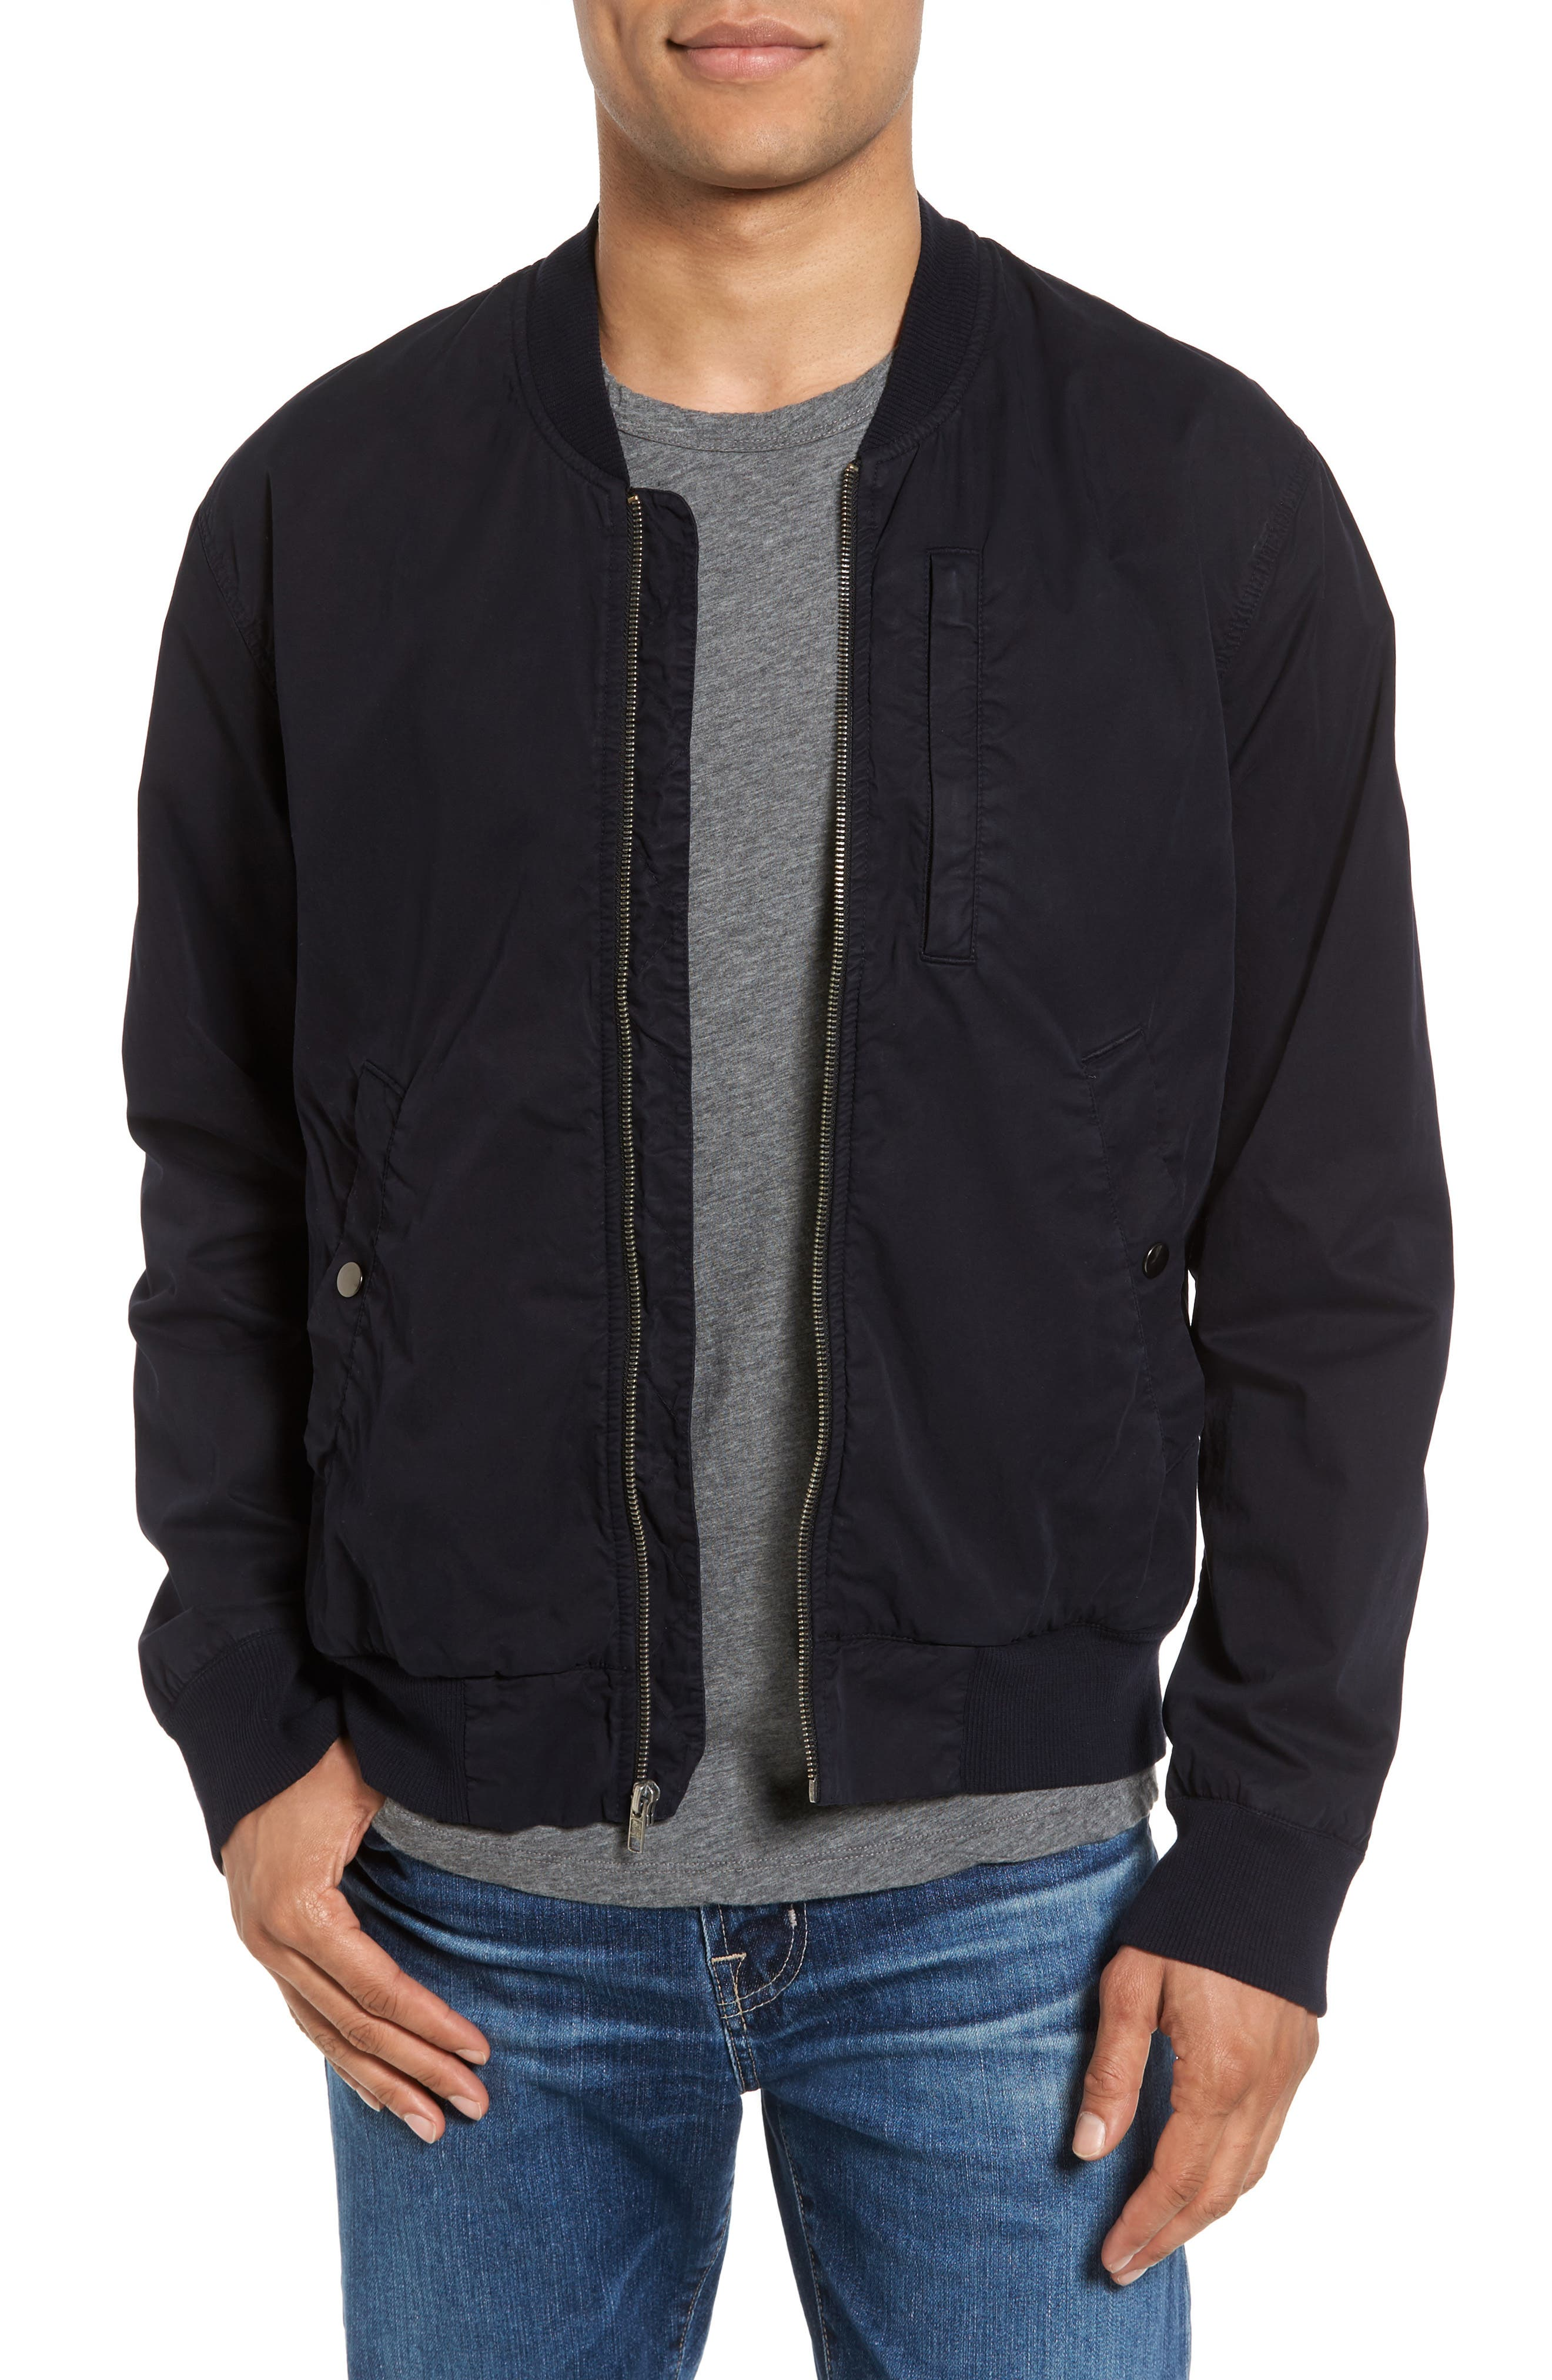 Alternate Image 1 Selected - James Perse Cotton Bomber Jacket